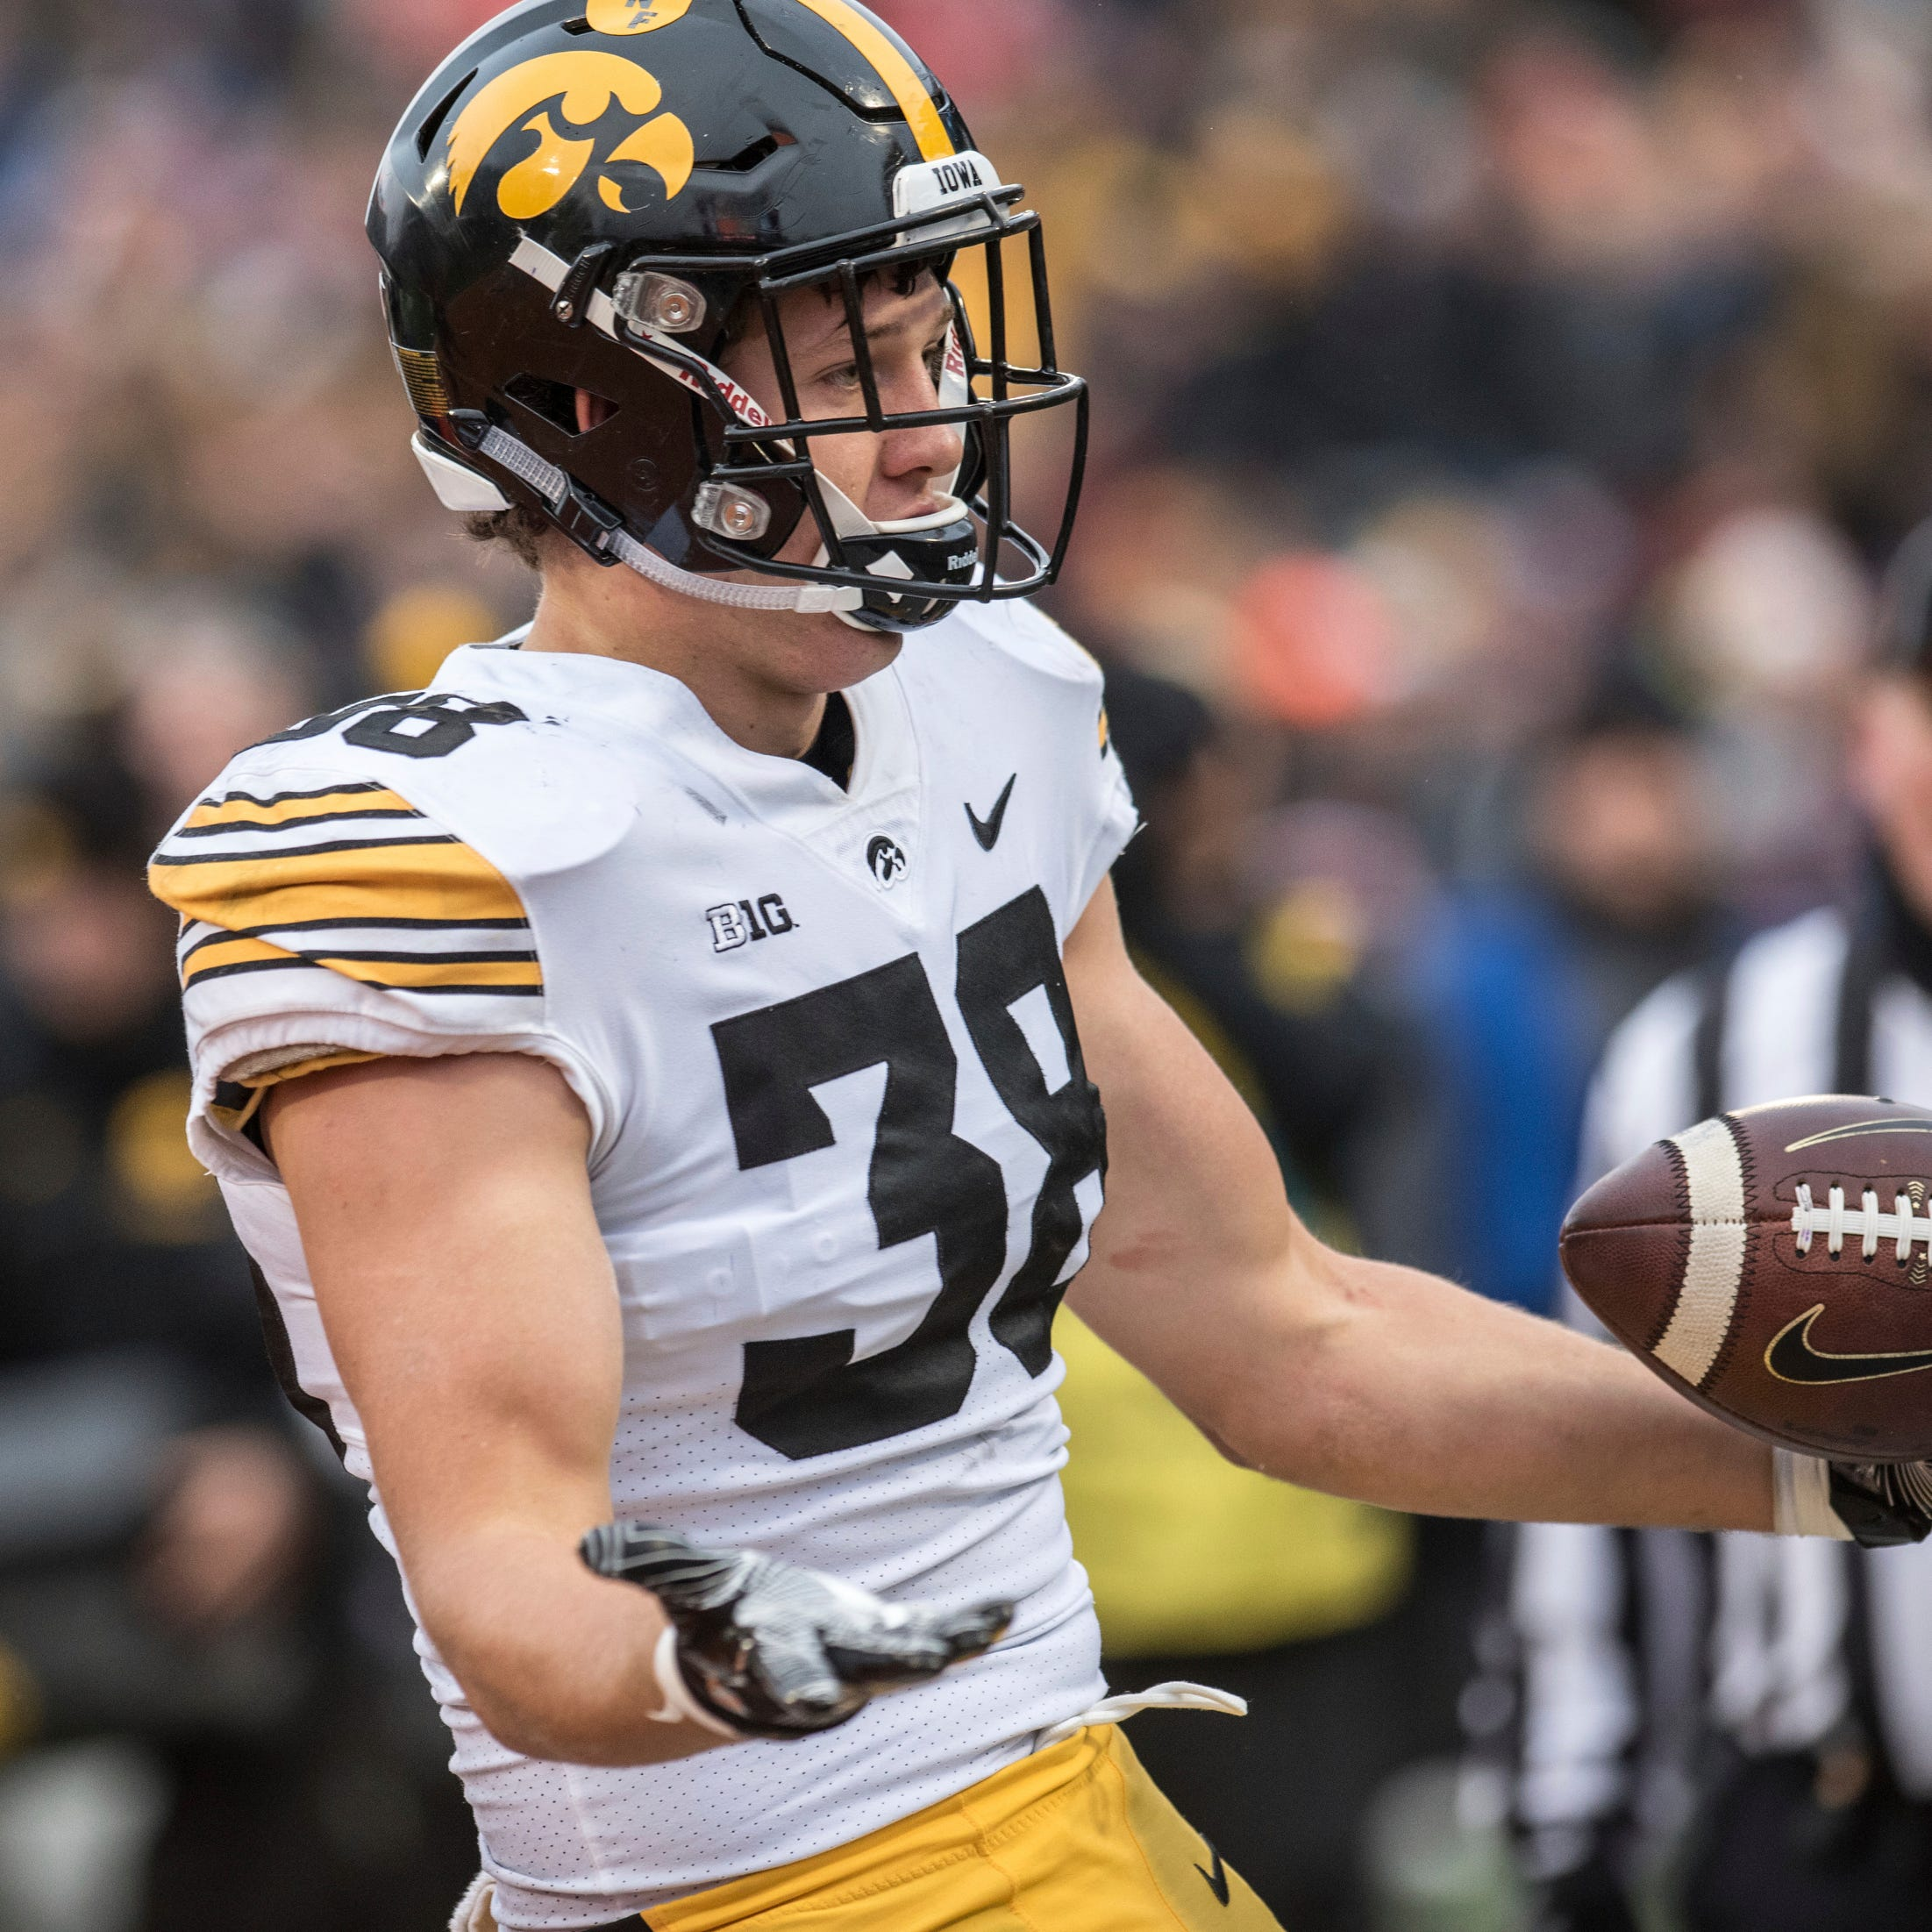 T.J. Hockenson has emerged as a star tight end for Iowa. Just don't tell him that.